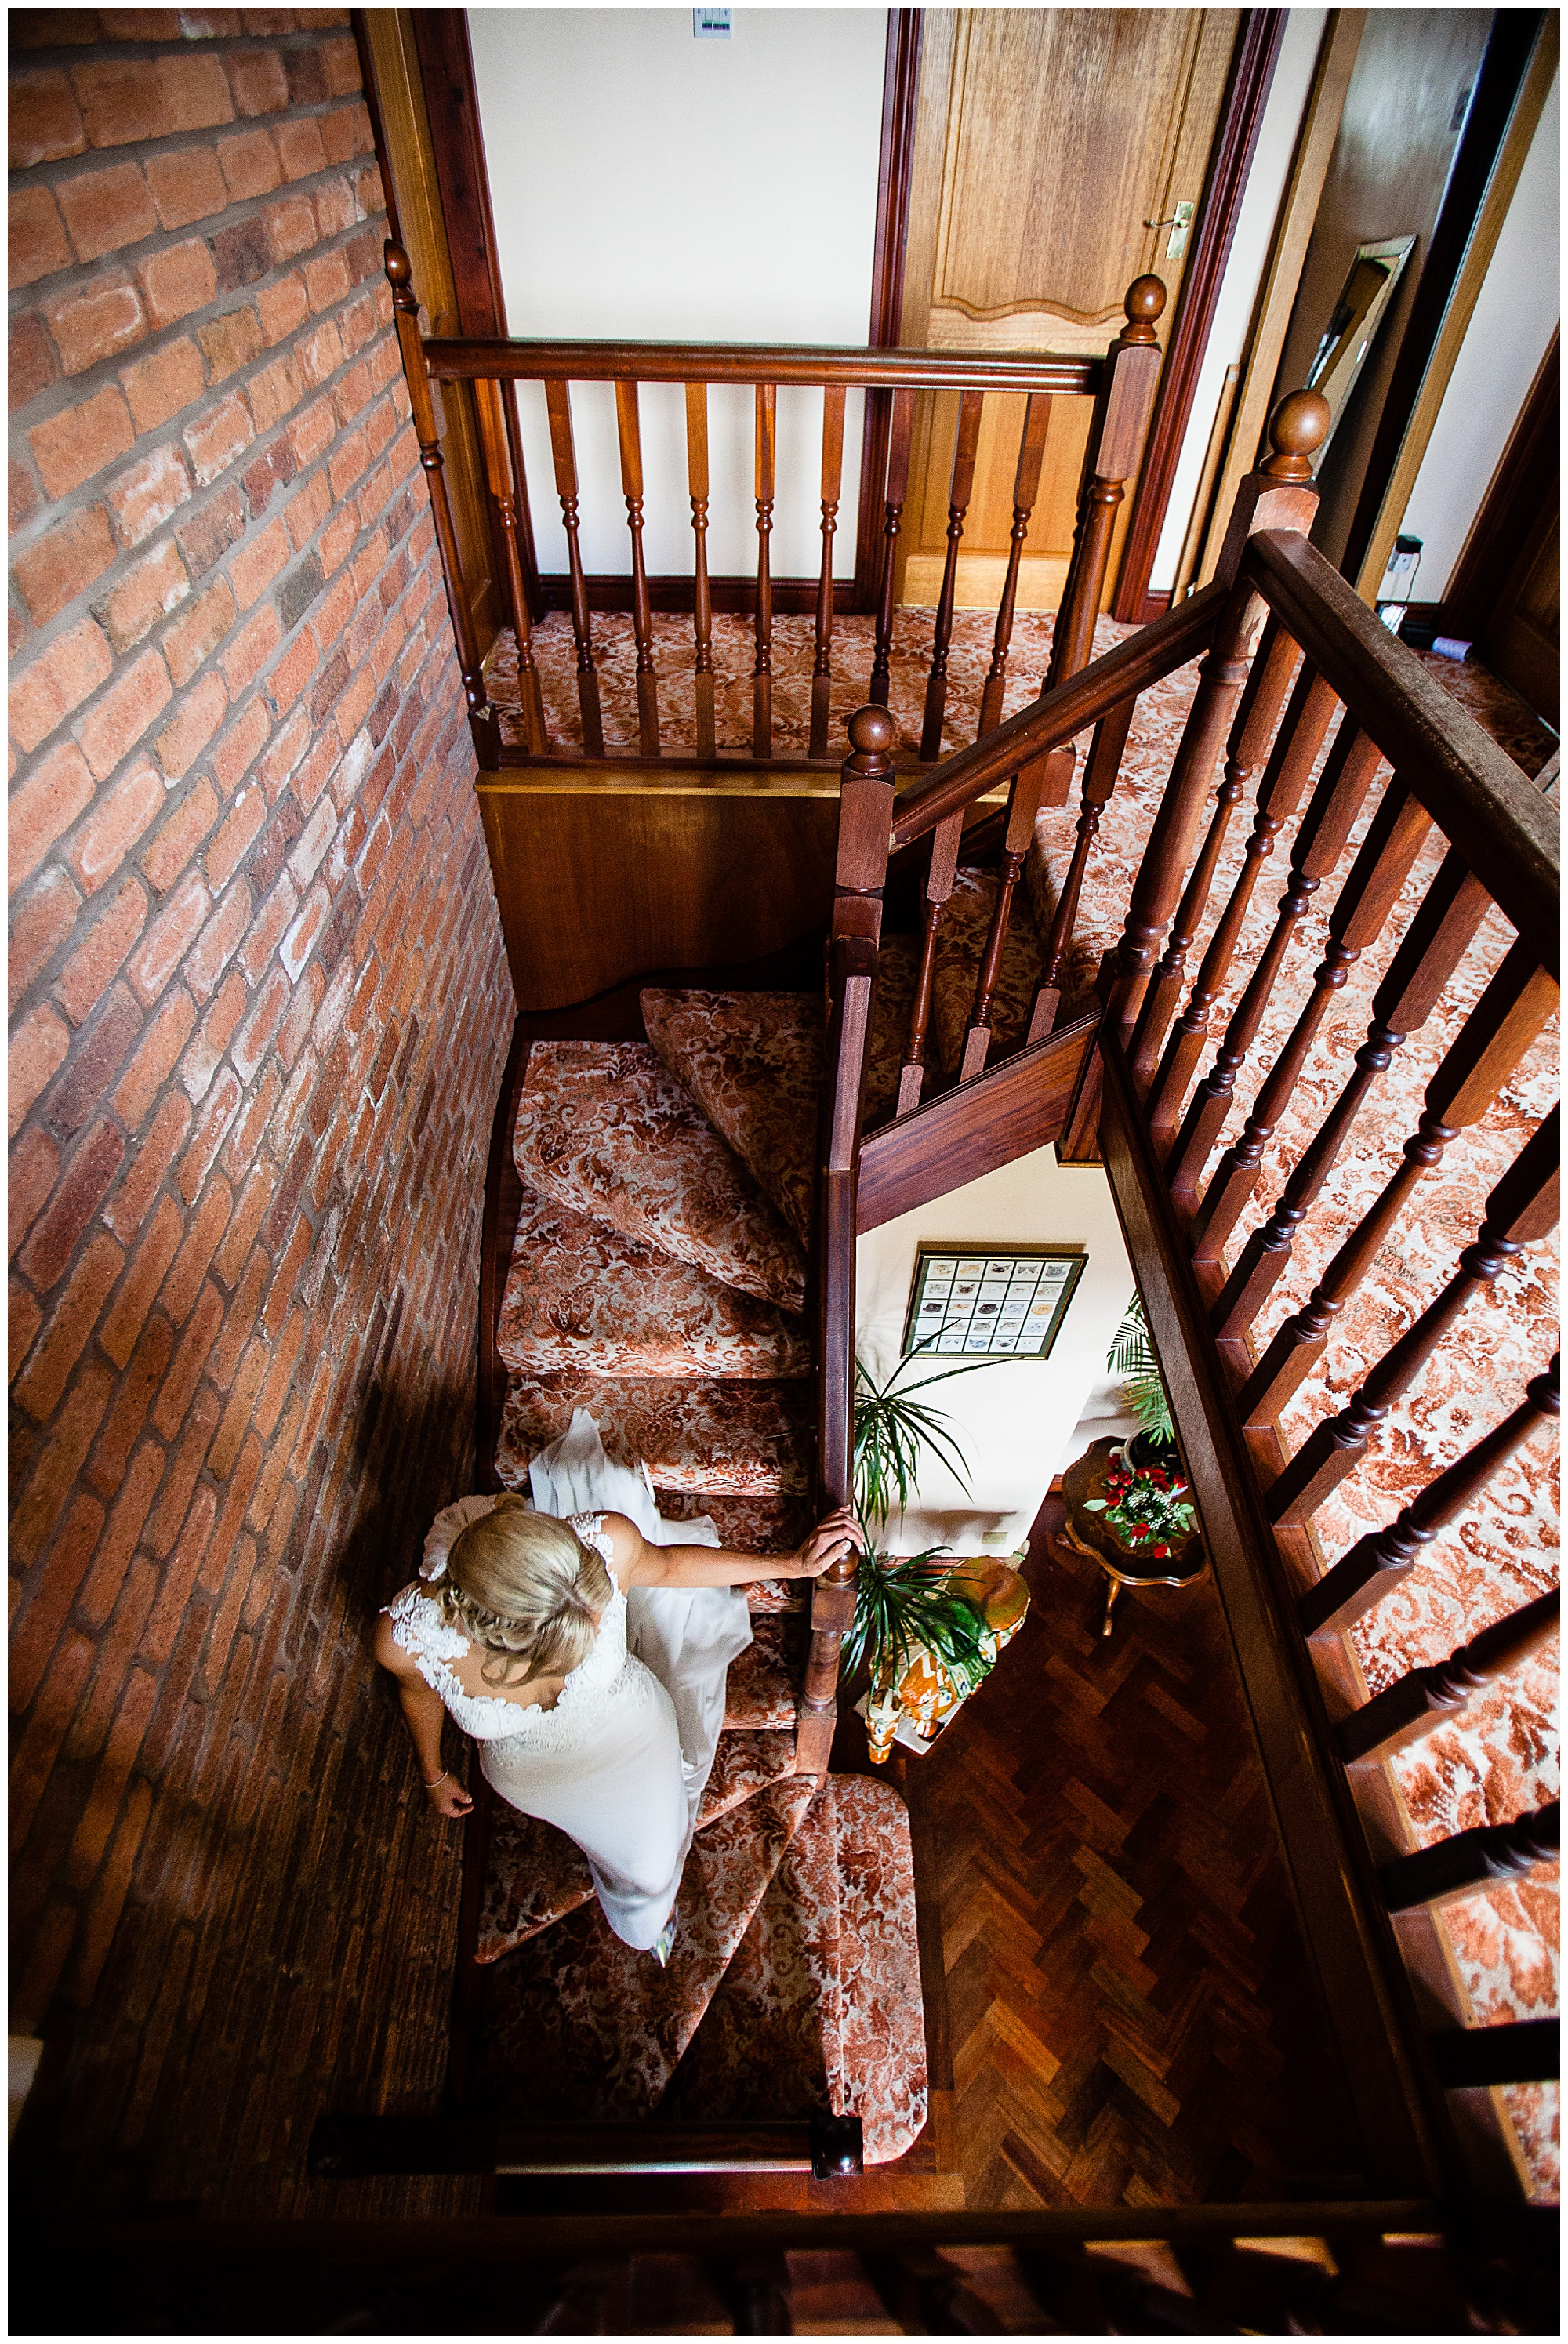 going down the stairs at home girls at the botom of the stairs